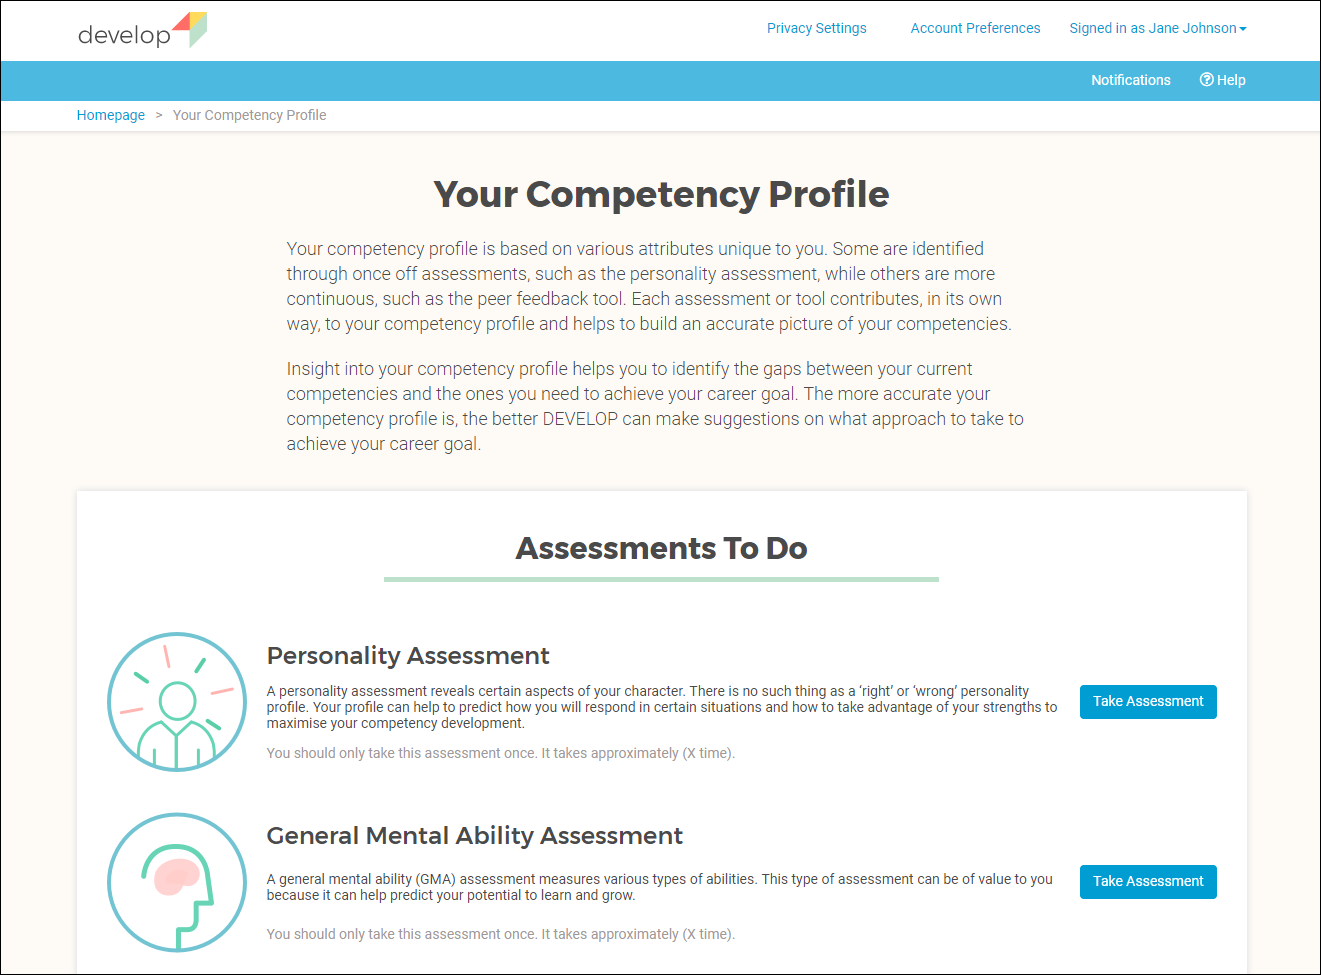 Assessments Overview Page